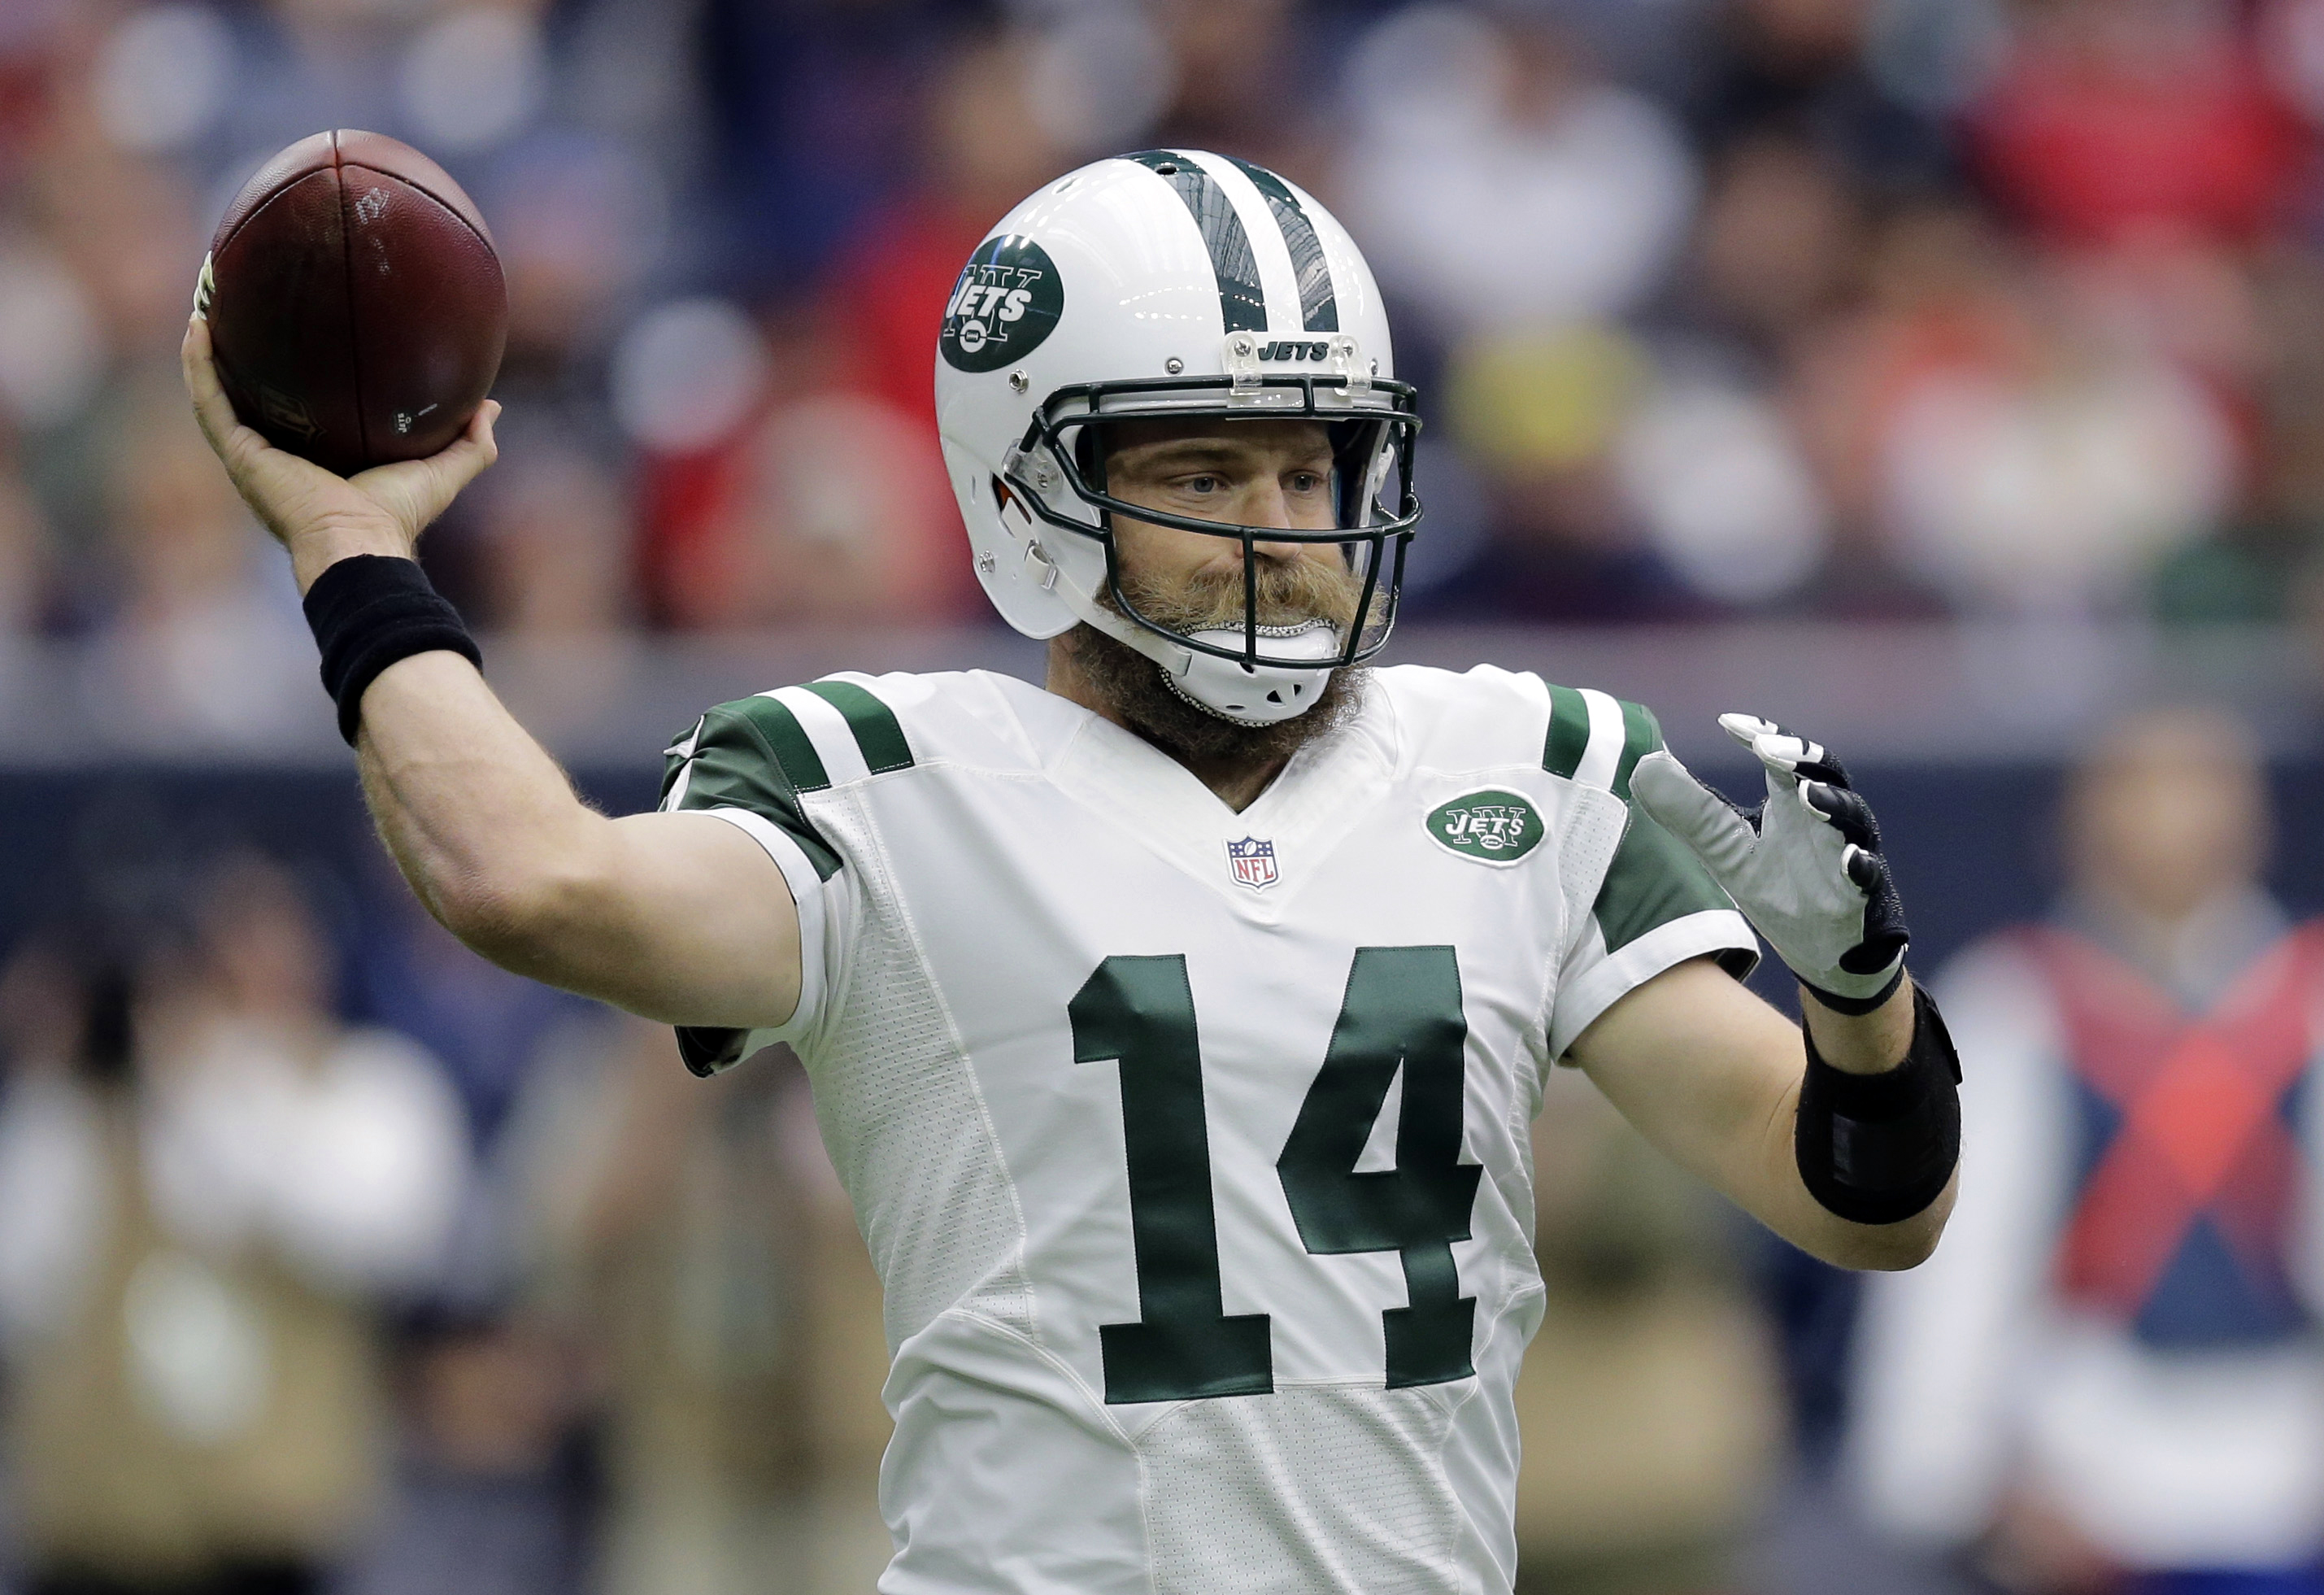 FILE - In this Nov. 22, 2015 file photo, New York Jets quarterback Ryan Fitzpatrick (14) looks to pass against the Houston Texans during the first half of an NFL football game in Houston. Fitzpatrick was largely overshadowed by other splashier offseason m